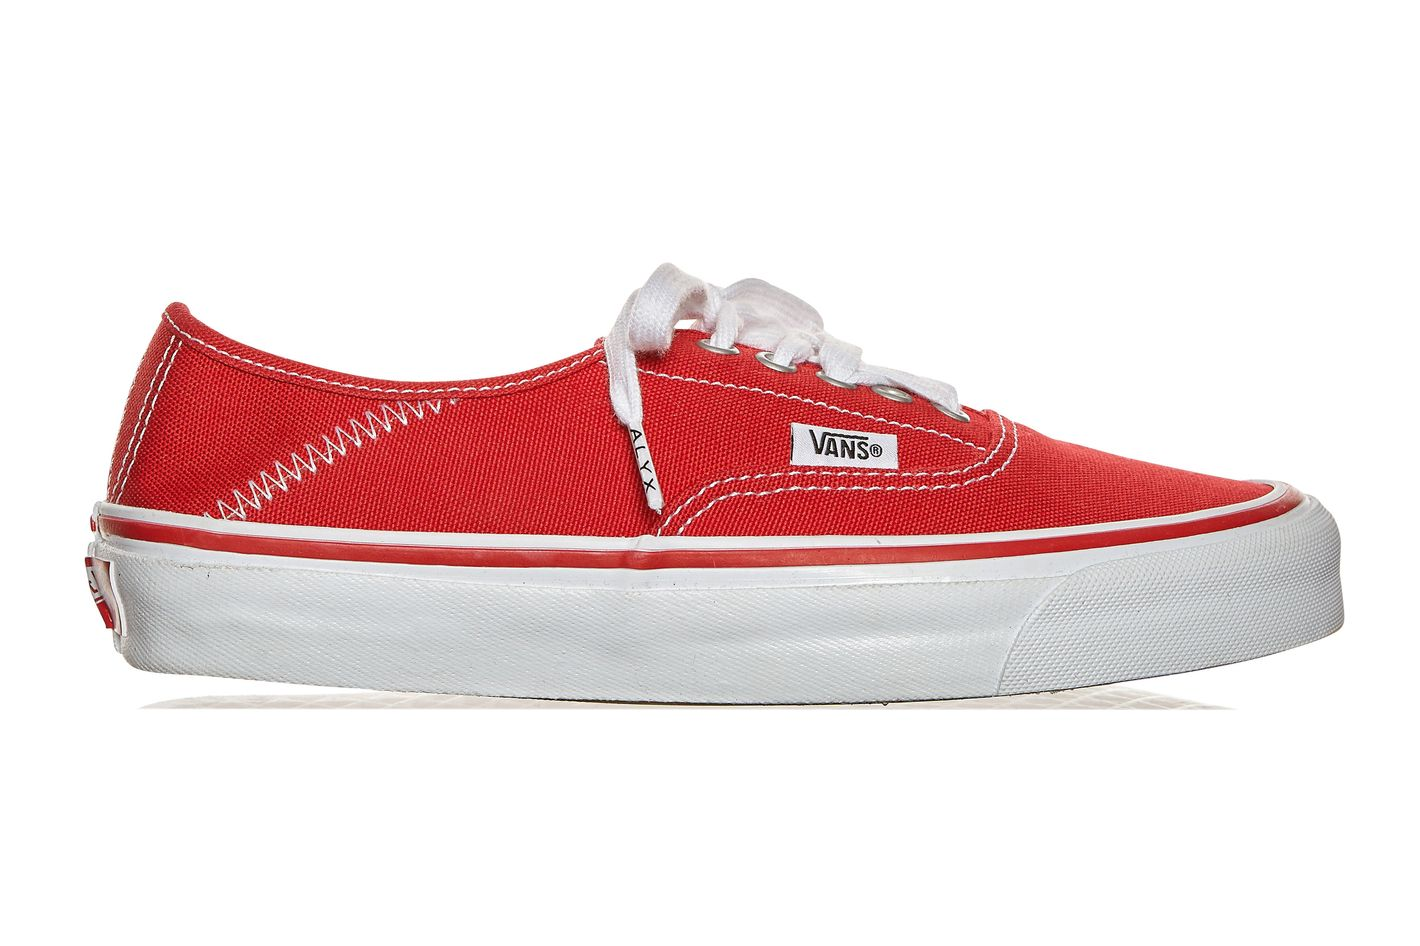 Vans x ALYX OG Style 43 LX in True Red